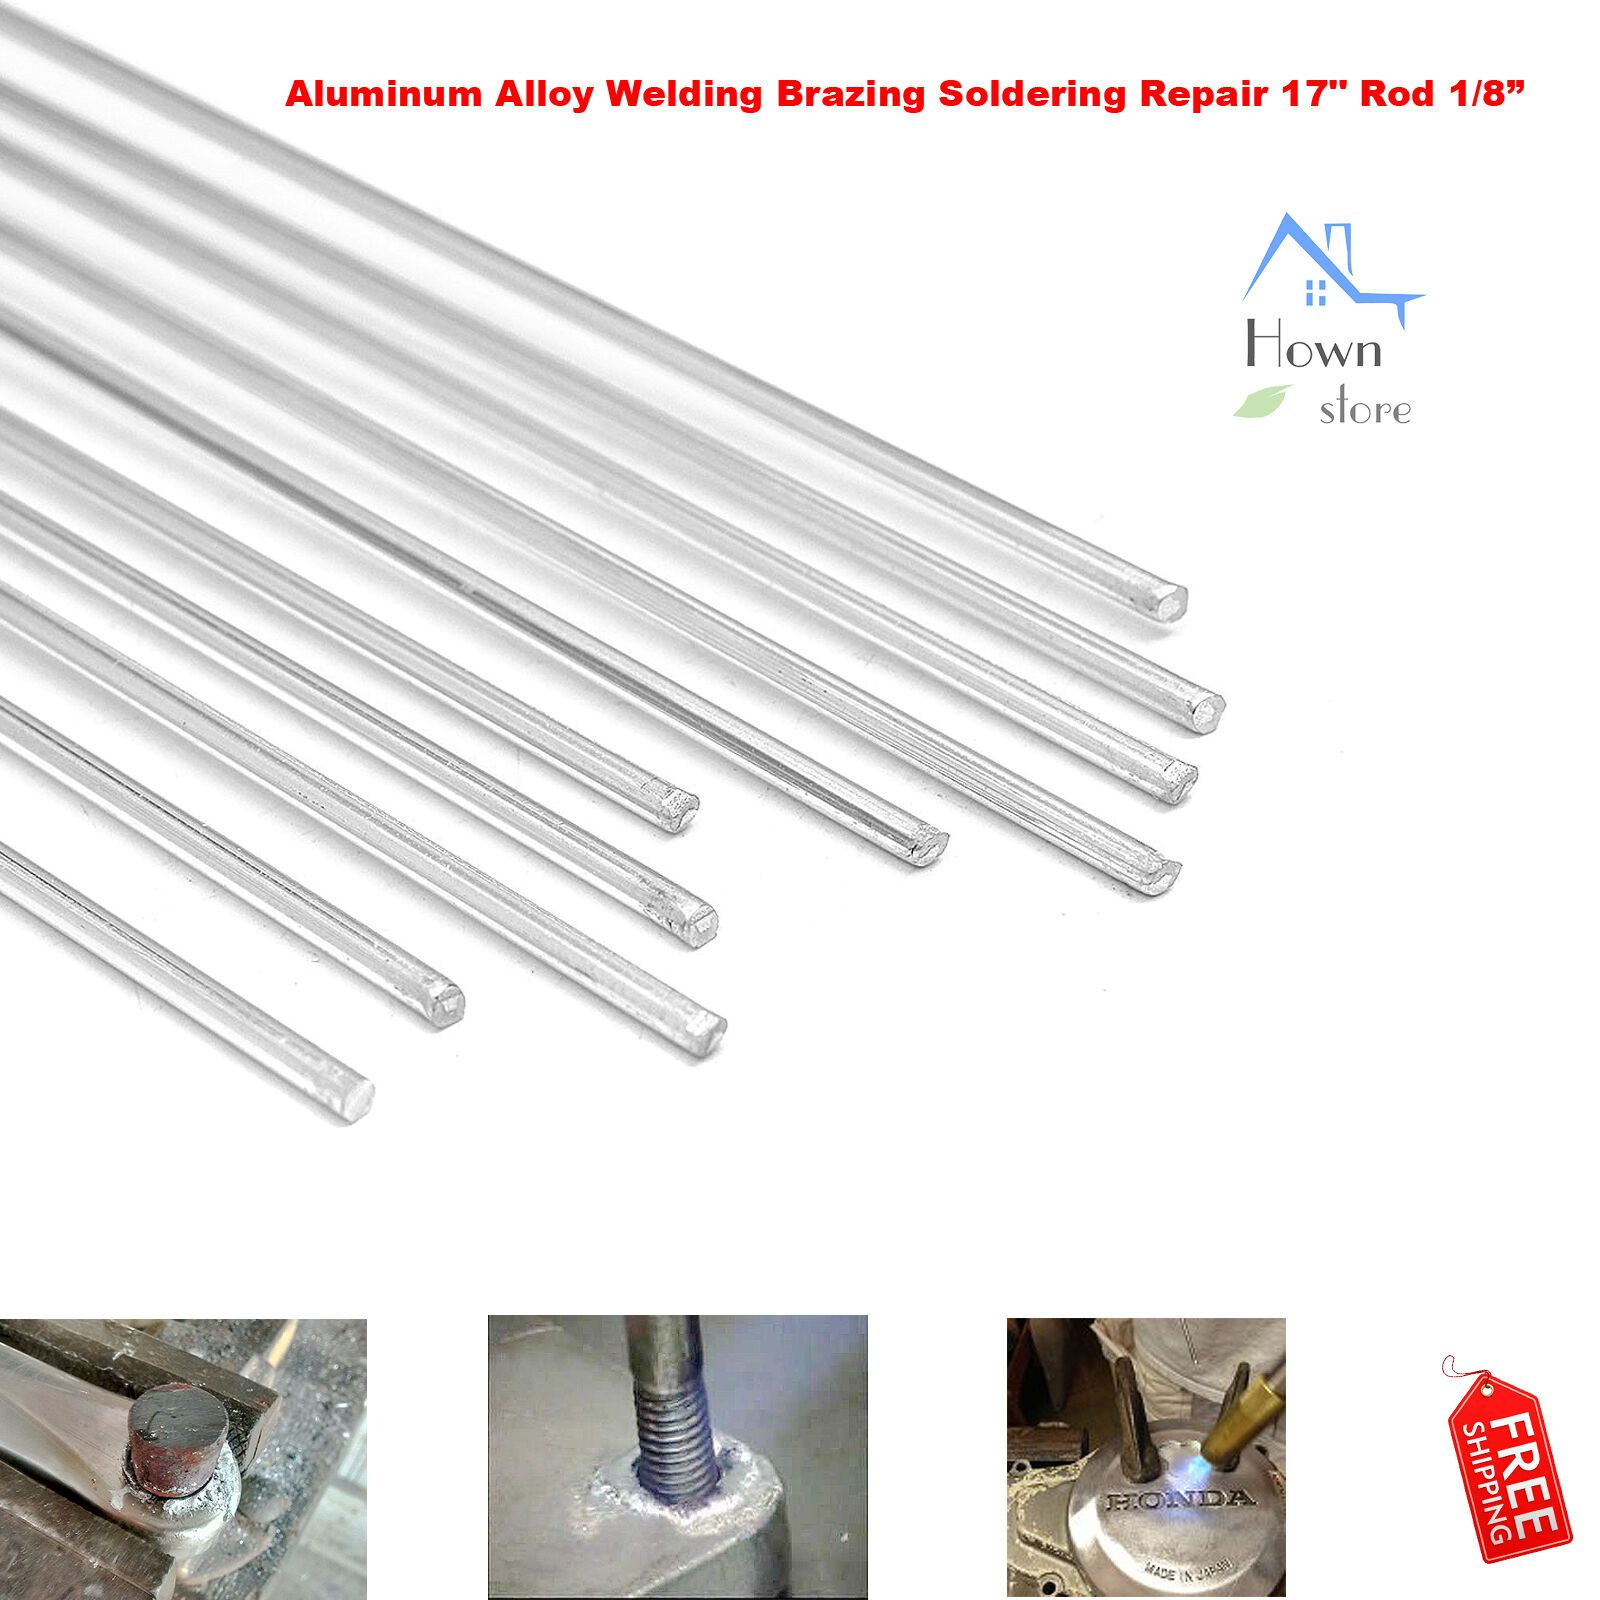 Aluminum Alloy Welding Brazing Soldering Repair 17 Rod Brazing Welding Aluminium Alloy